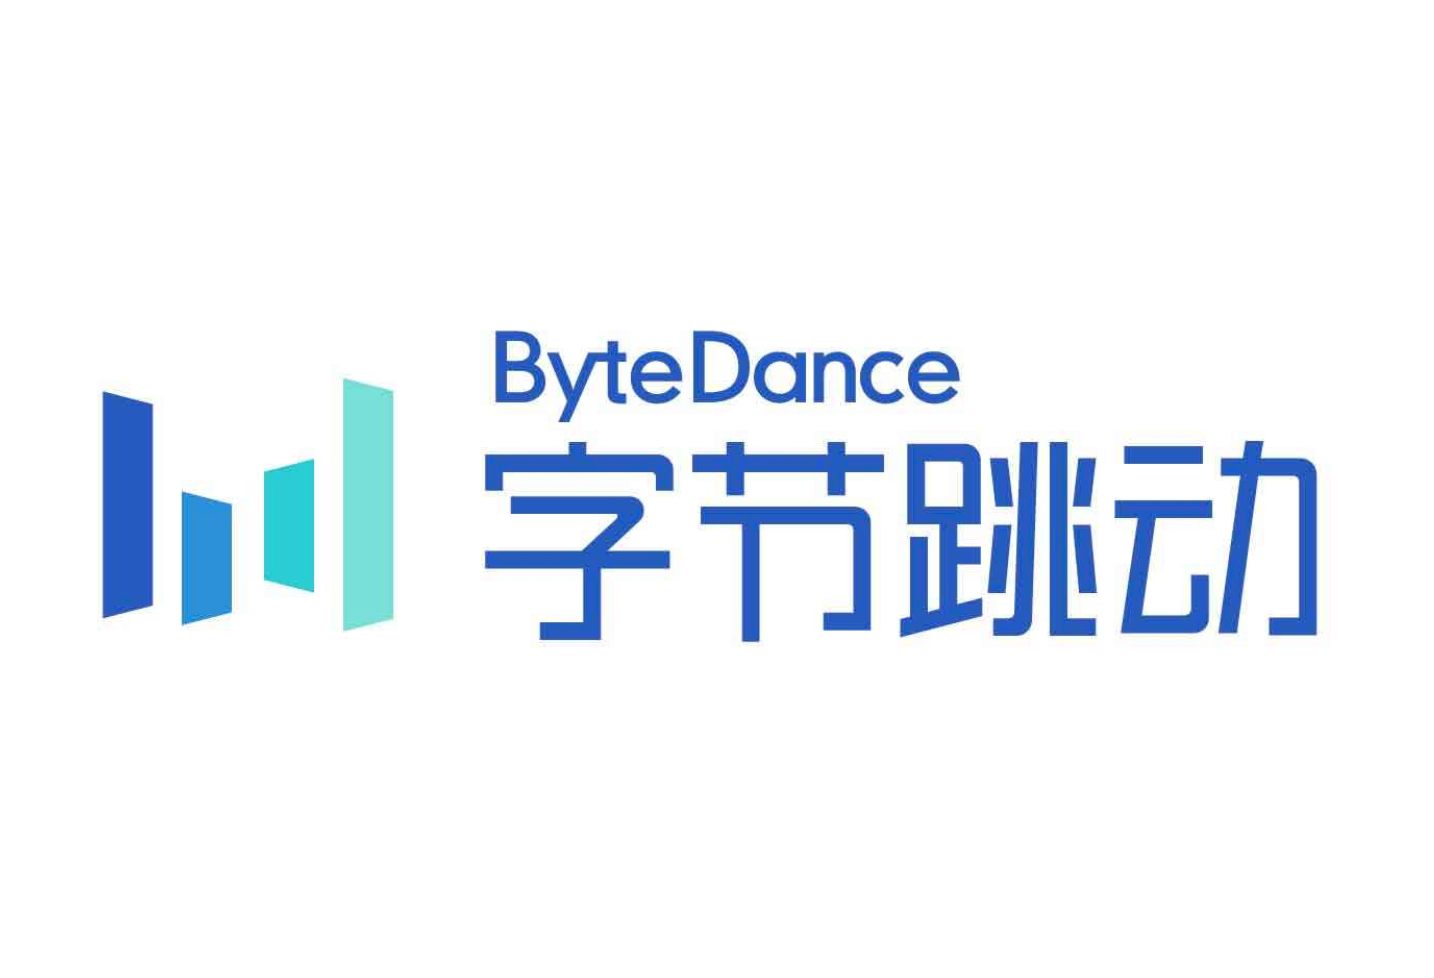 ByteDance hiring talent to develop new drugs using AI technology-CnTechPost